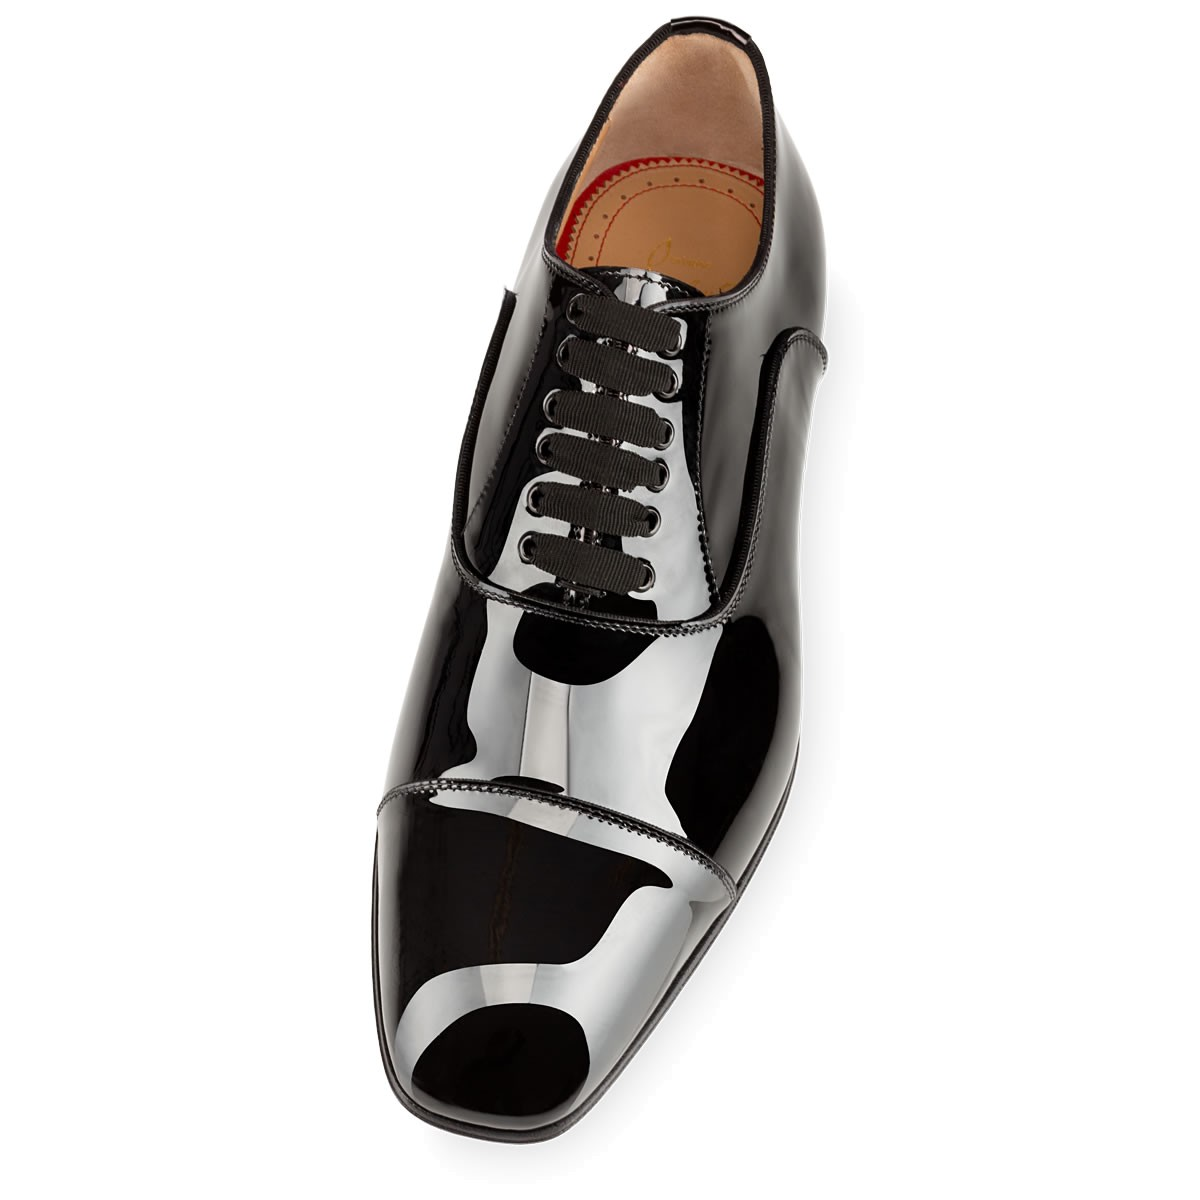 Christian Louboutin Mens Shoes